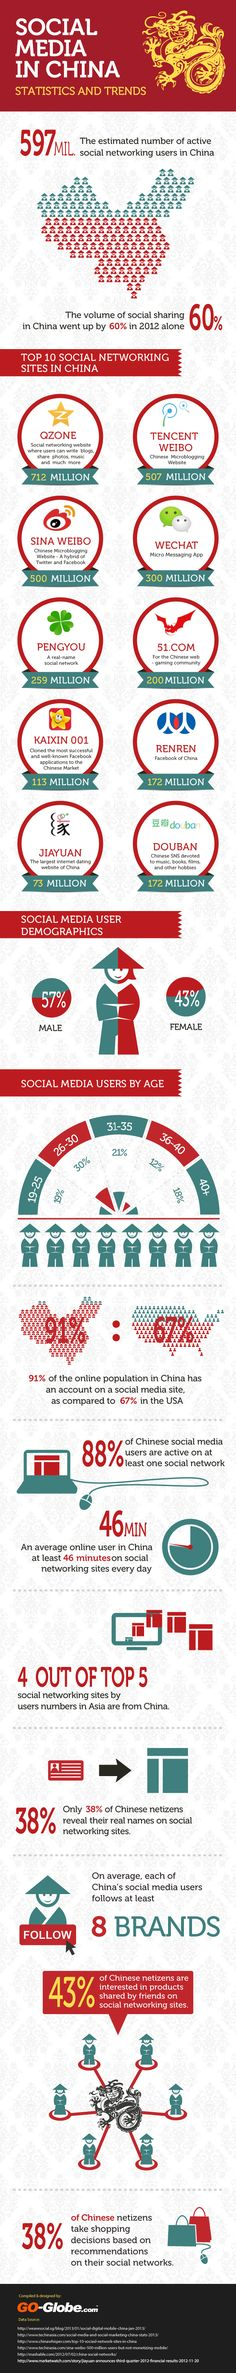 Infographic about Social Media usage in China 2013